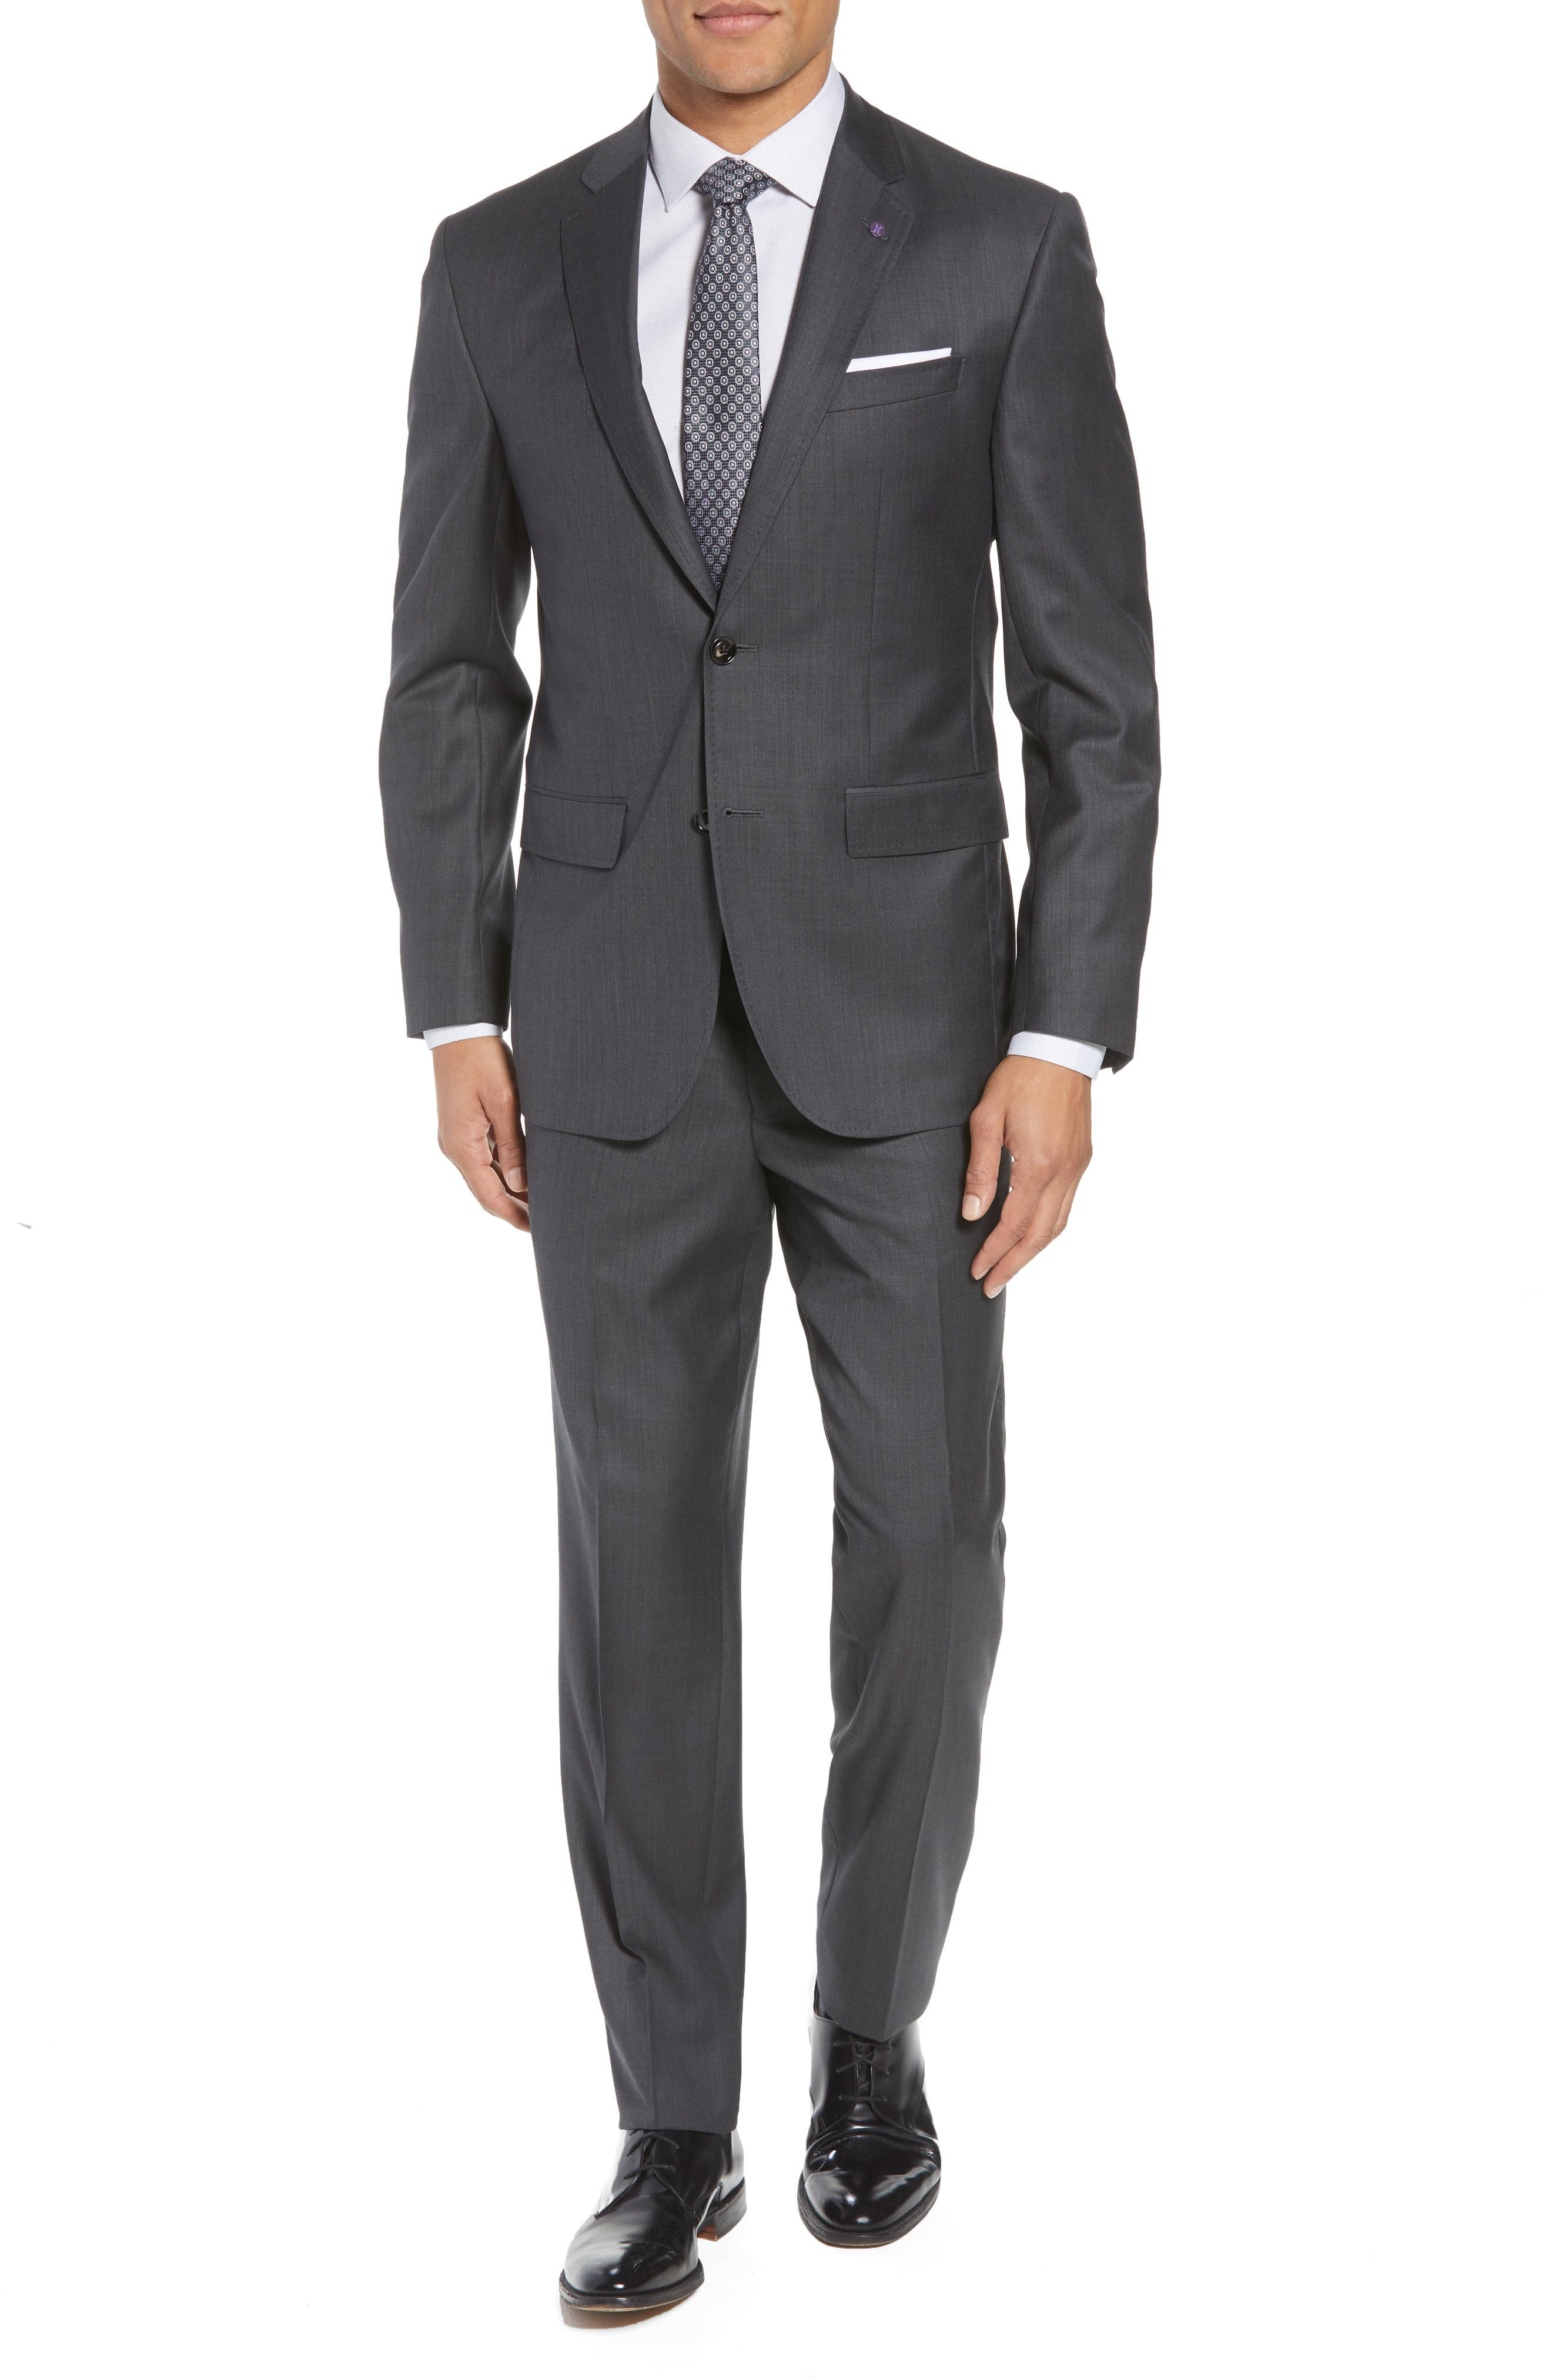 TED BAKER LONDON, ay' Trim Fit Solid Wool Suit, Main thumbnail 1, color, CHARCOAL